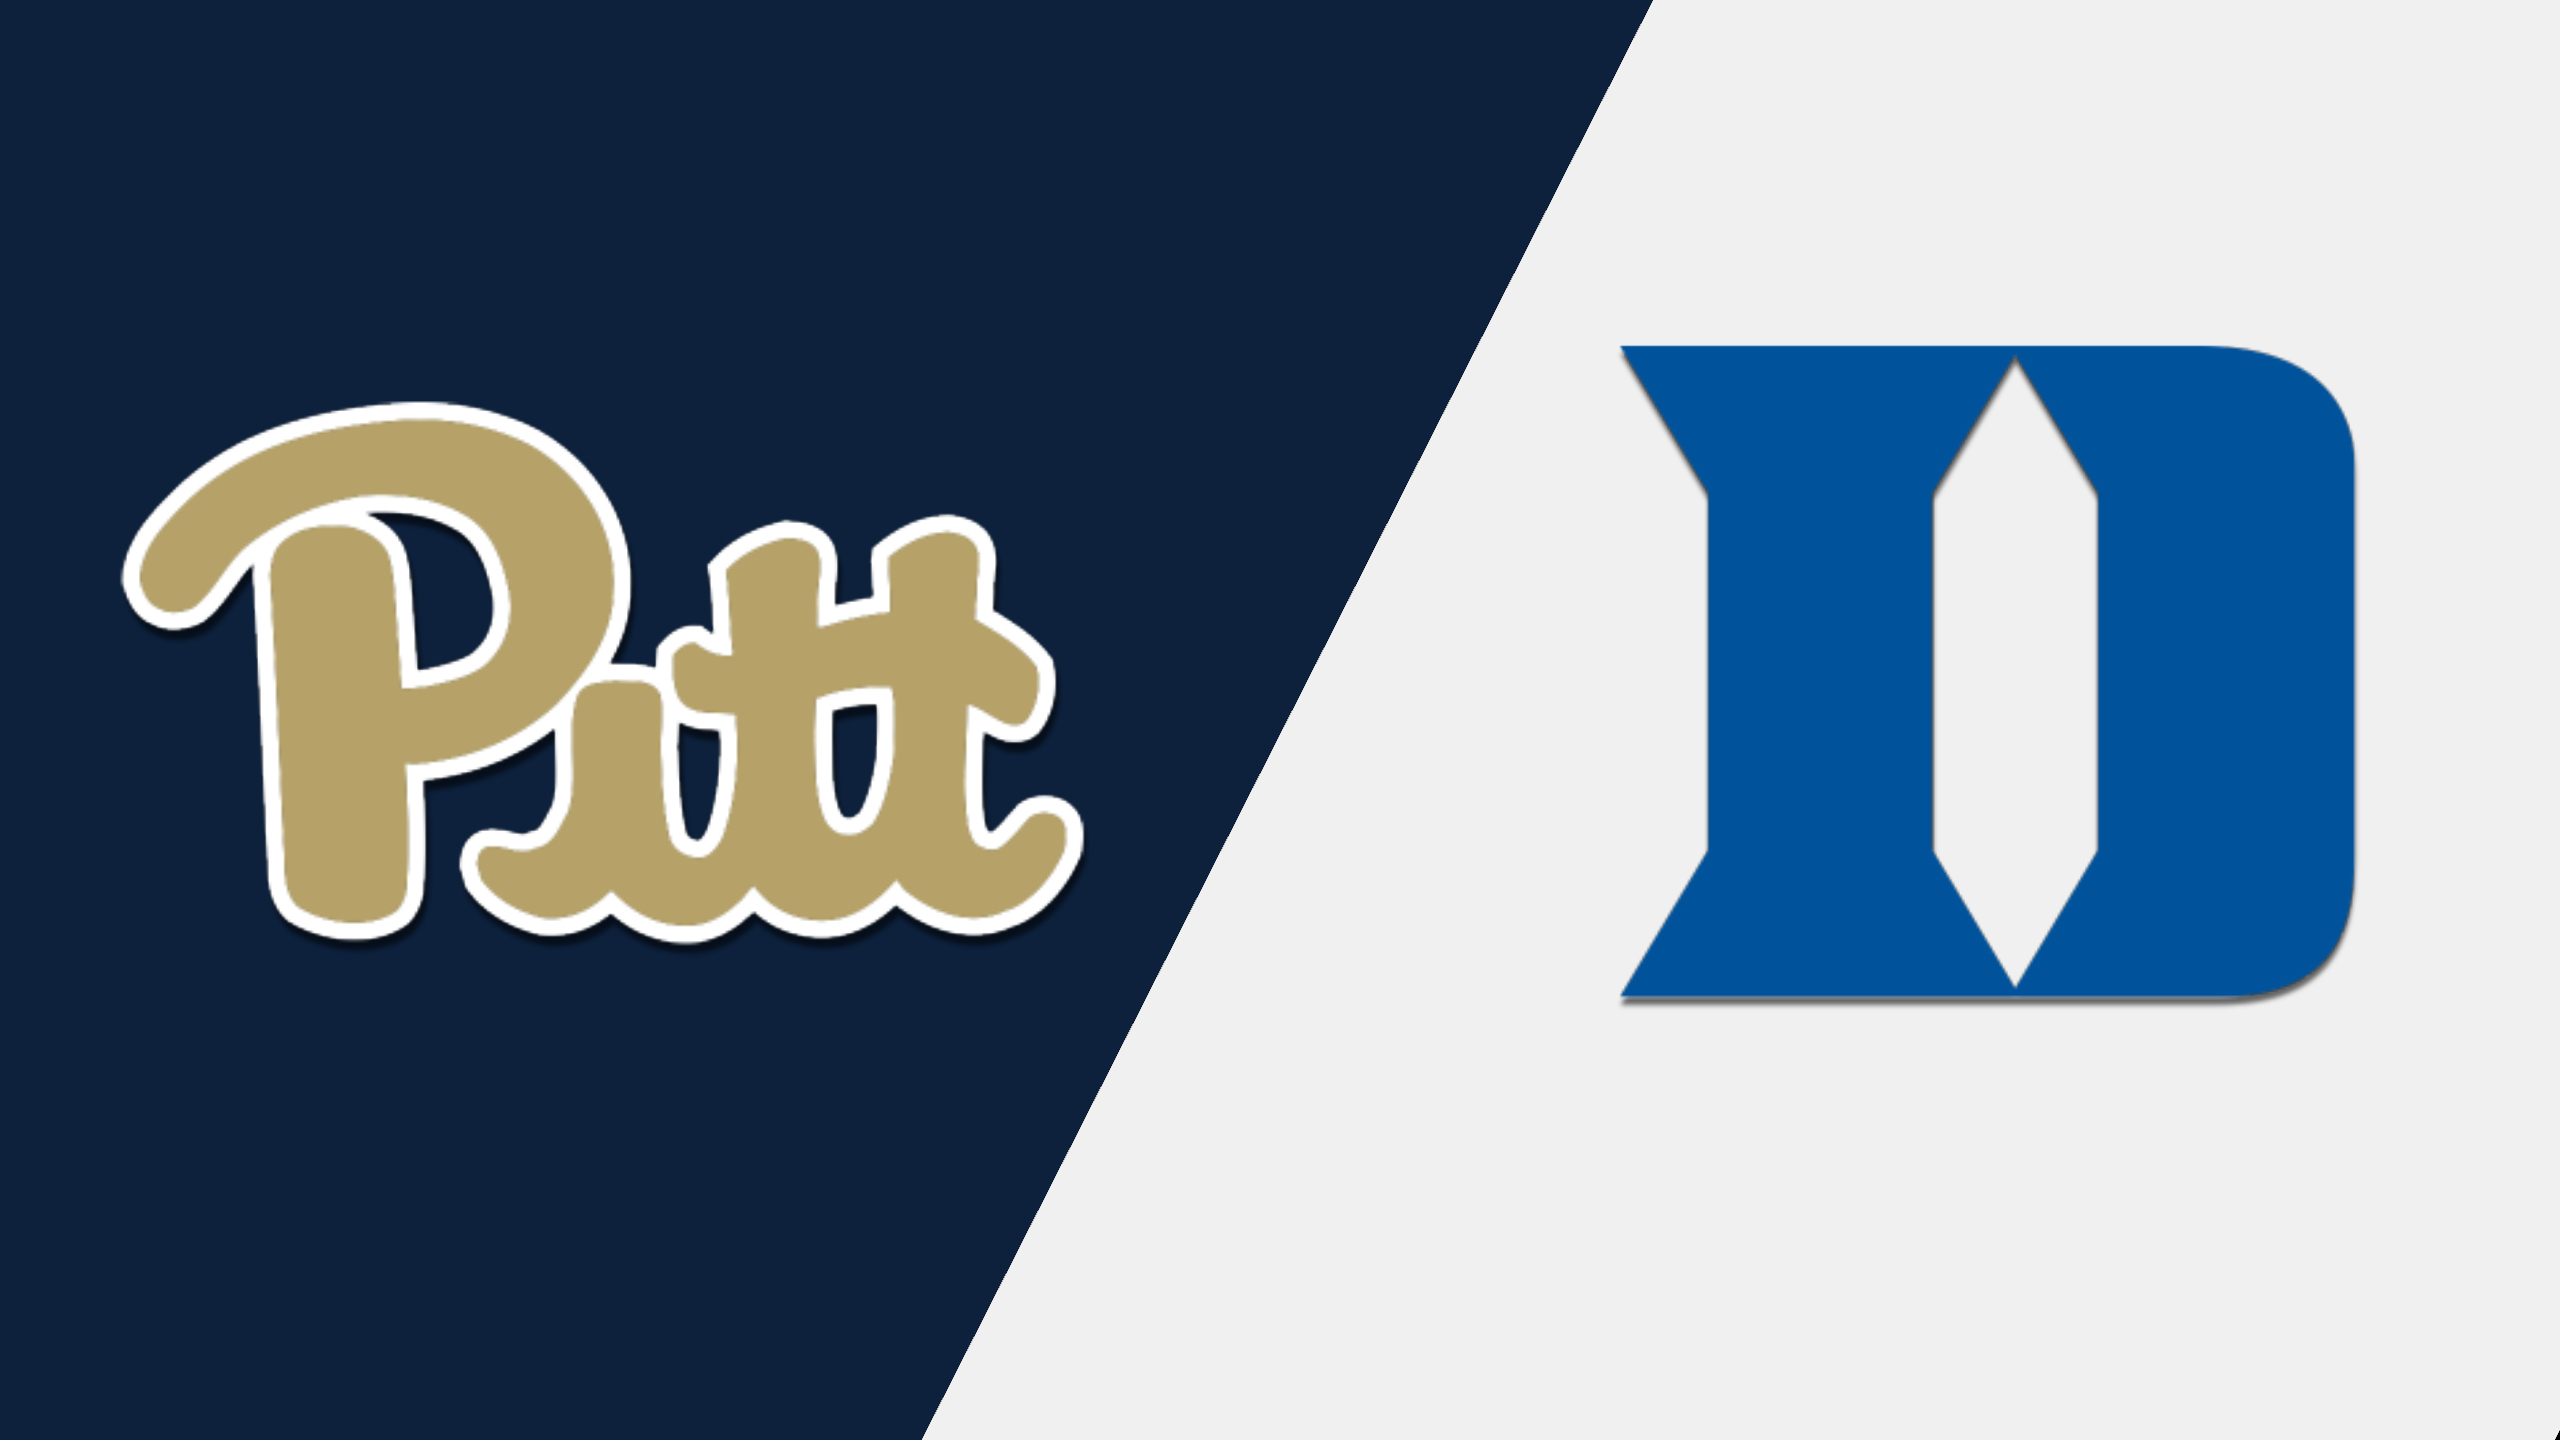 Pittsburgh vs. Duke